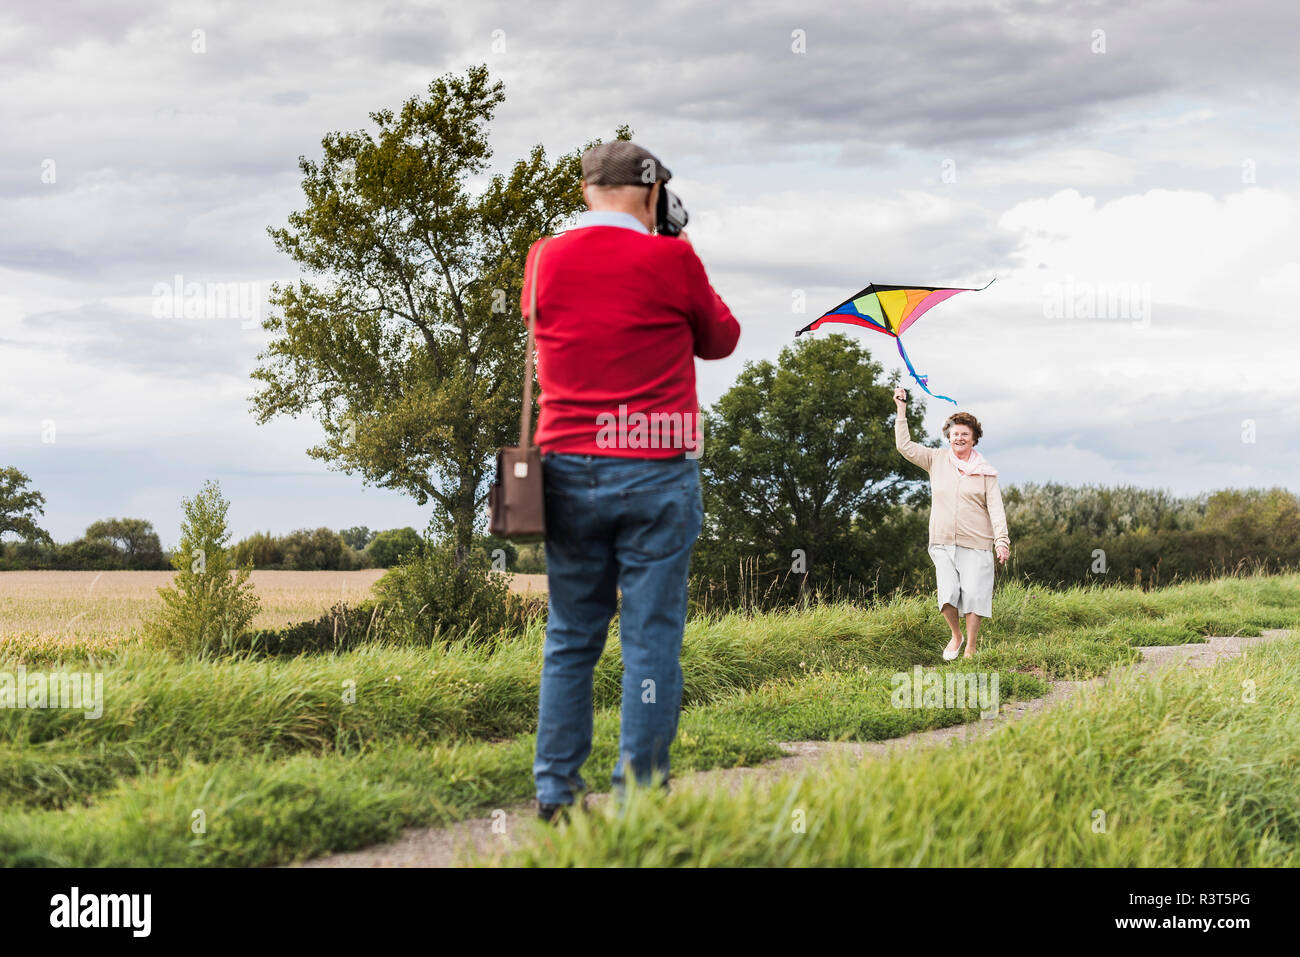 Senior man filming wife flying kite in rural landscape - Stock Image